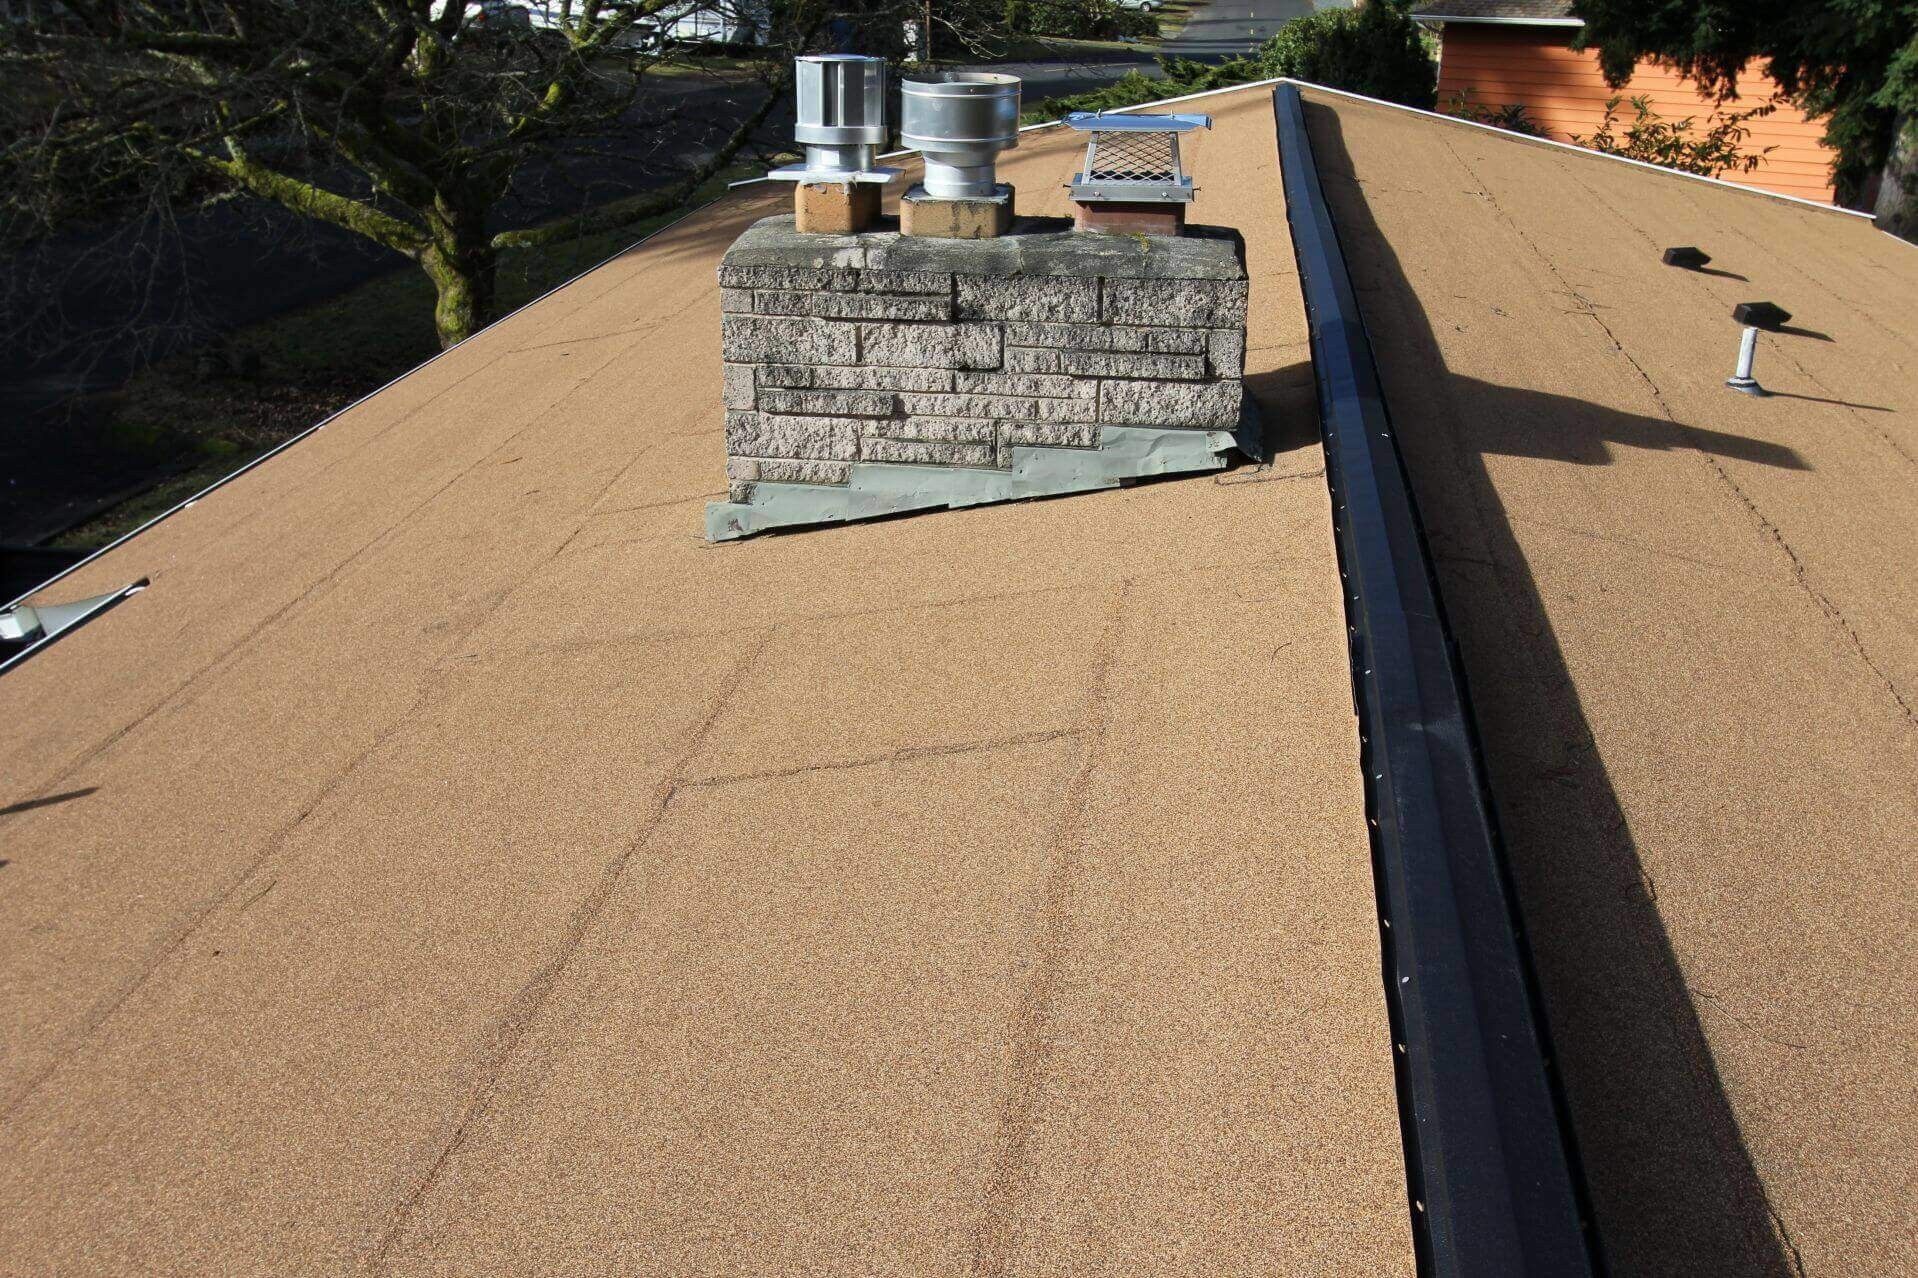 Edmonds, Shoreline & Lynnwood, WA. 45 Years - Leading Licensed Local Company. Commercial & Residential Roofers. Shingle Master Certified. Leak Repairs & New Replacements. Emergency Service.